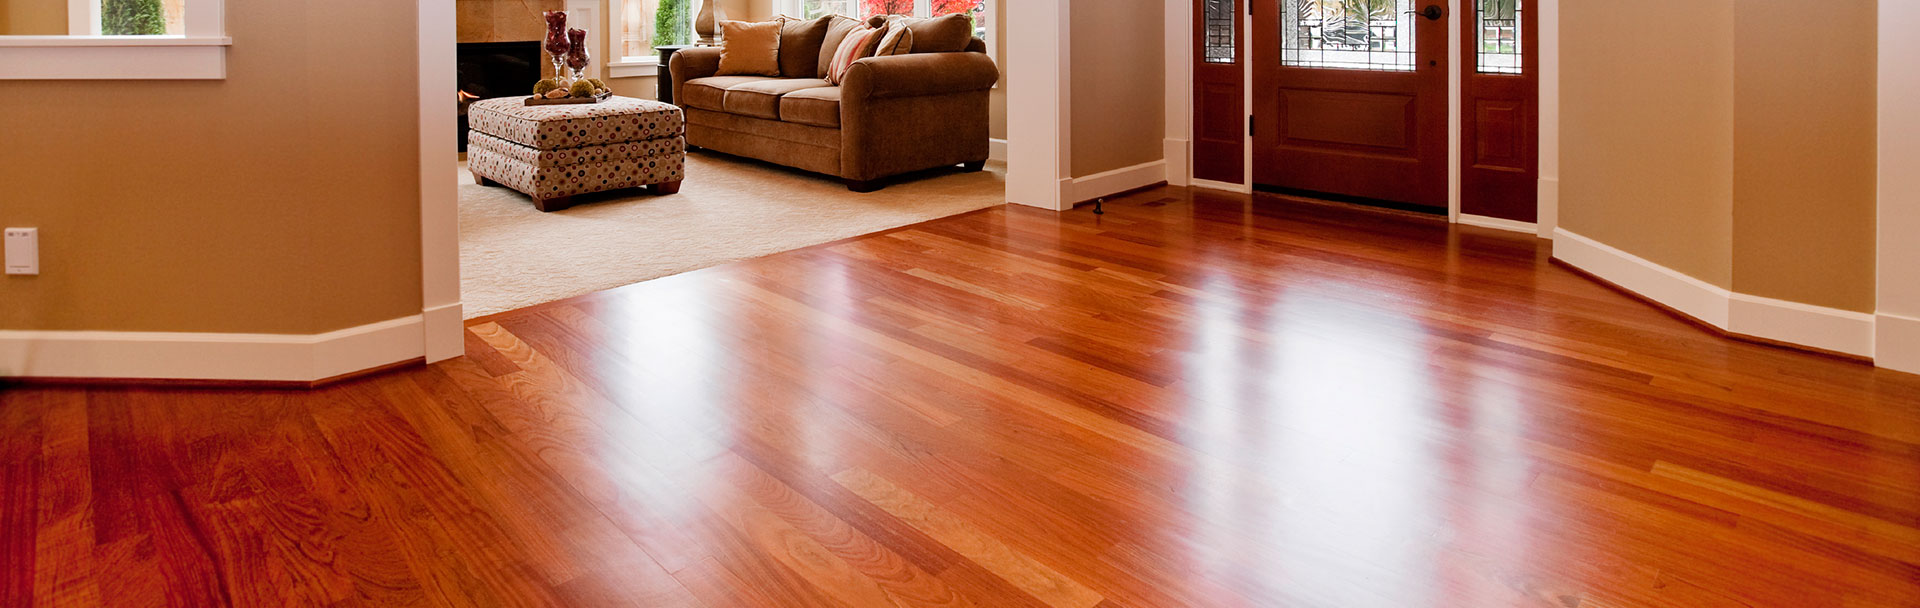 Call Us about Dust-Free Hardwood Floor Sanding, Refinishing & Repairs